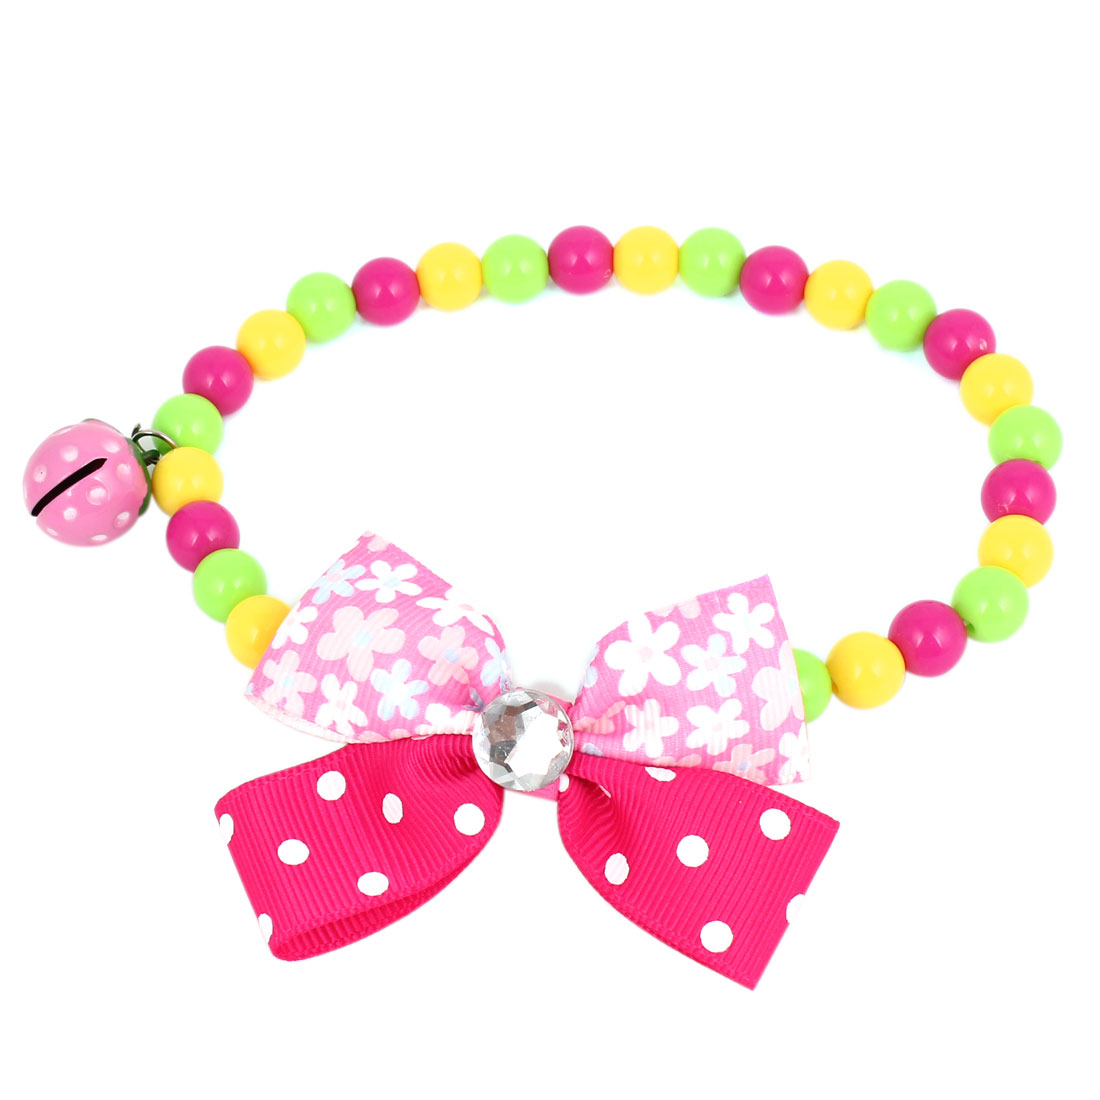 Metal Bell Pendant Bowtie Accent Pet Dog Plastic Round Beads Collar Necklace Assorted Color L